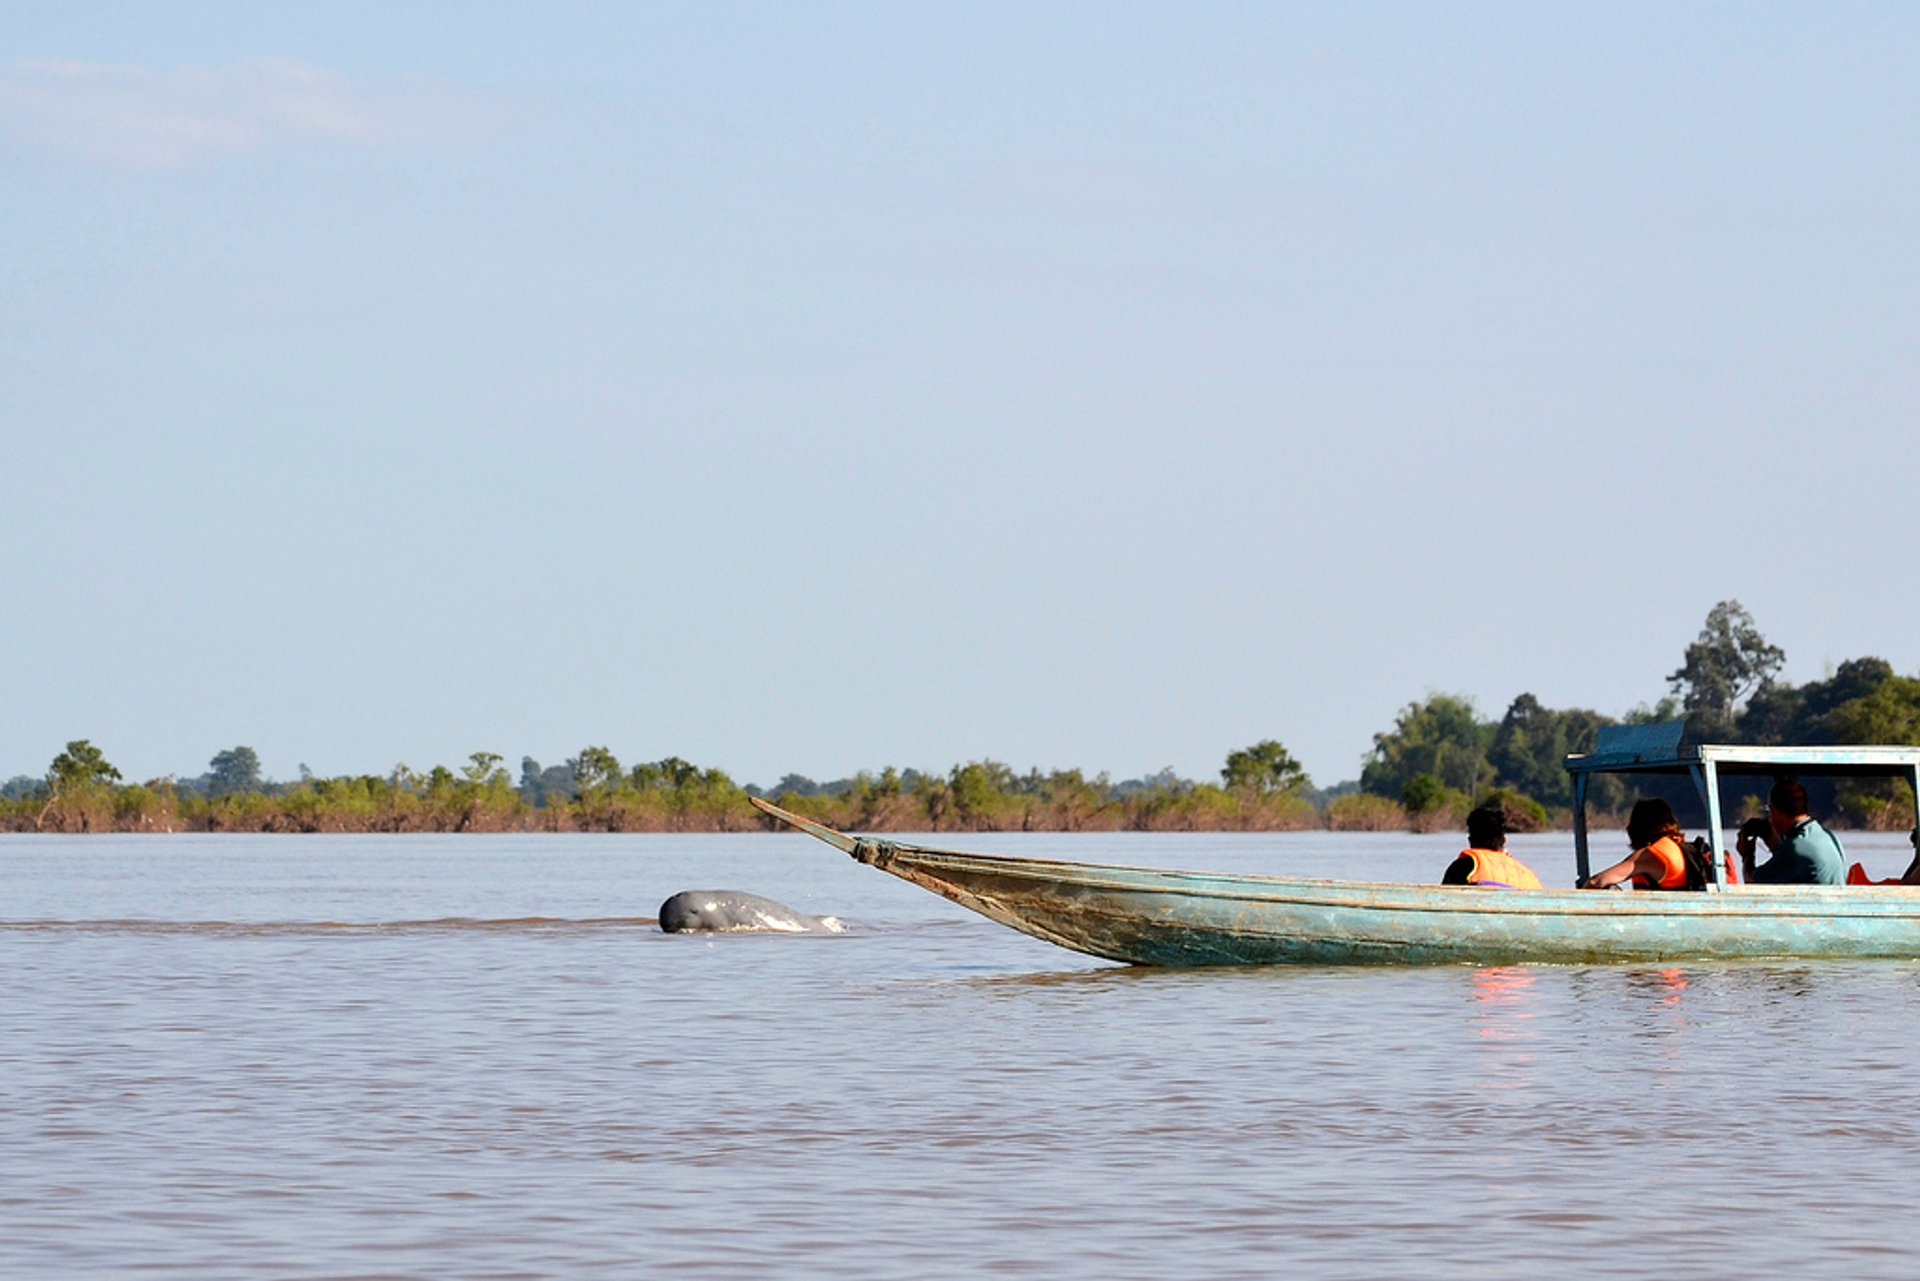 Mekong River Dolphin in Cambodia - Best Time